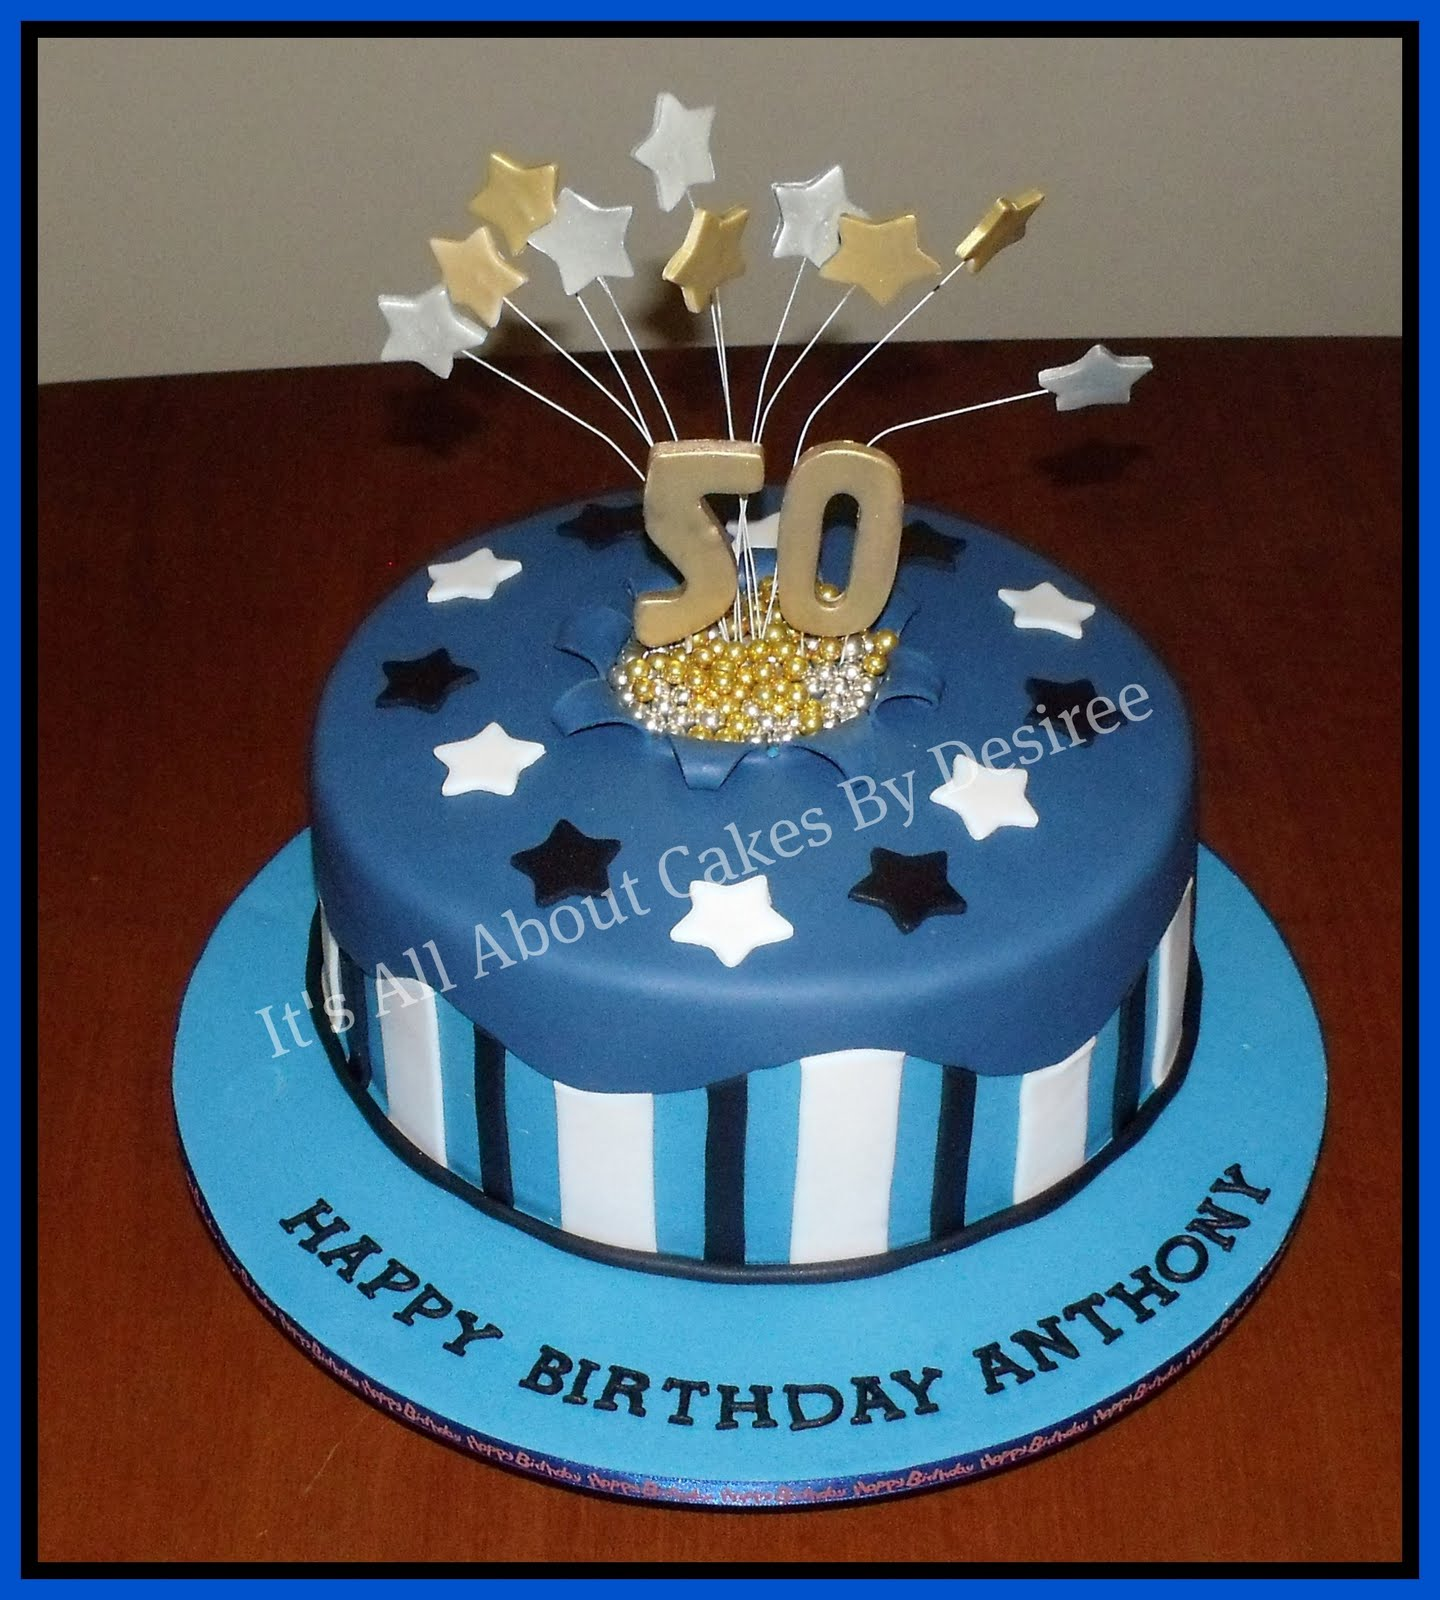 Birthday Cake Images For Males : 50th birthday cakes on Pinterest 50th Birthday Cakes ...